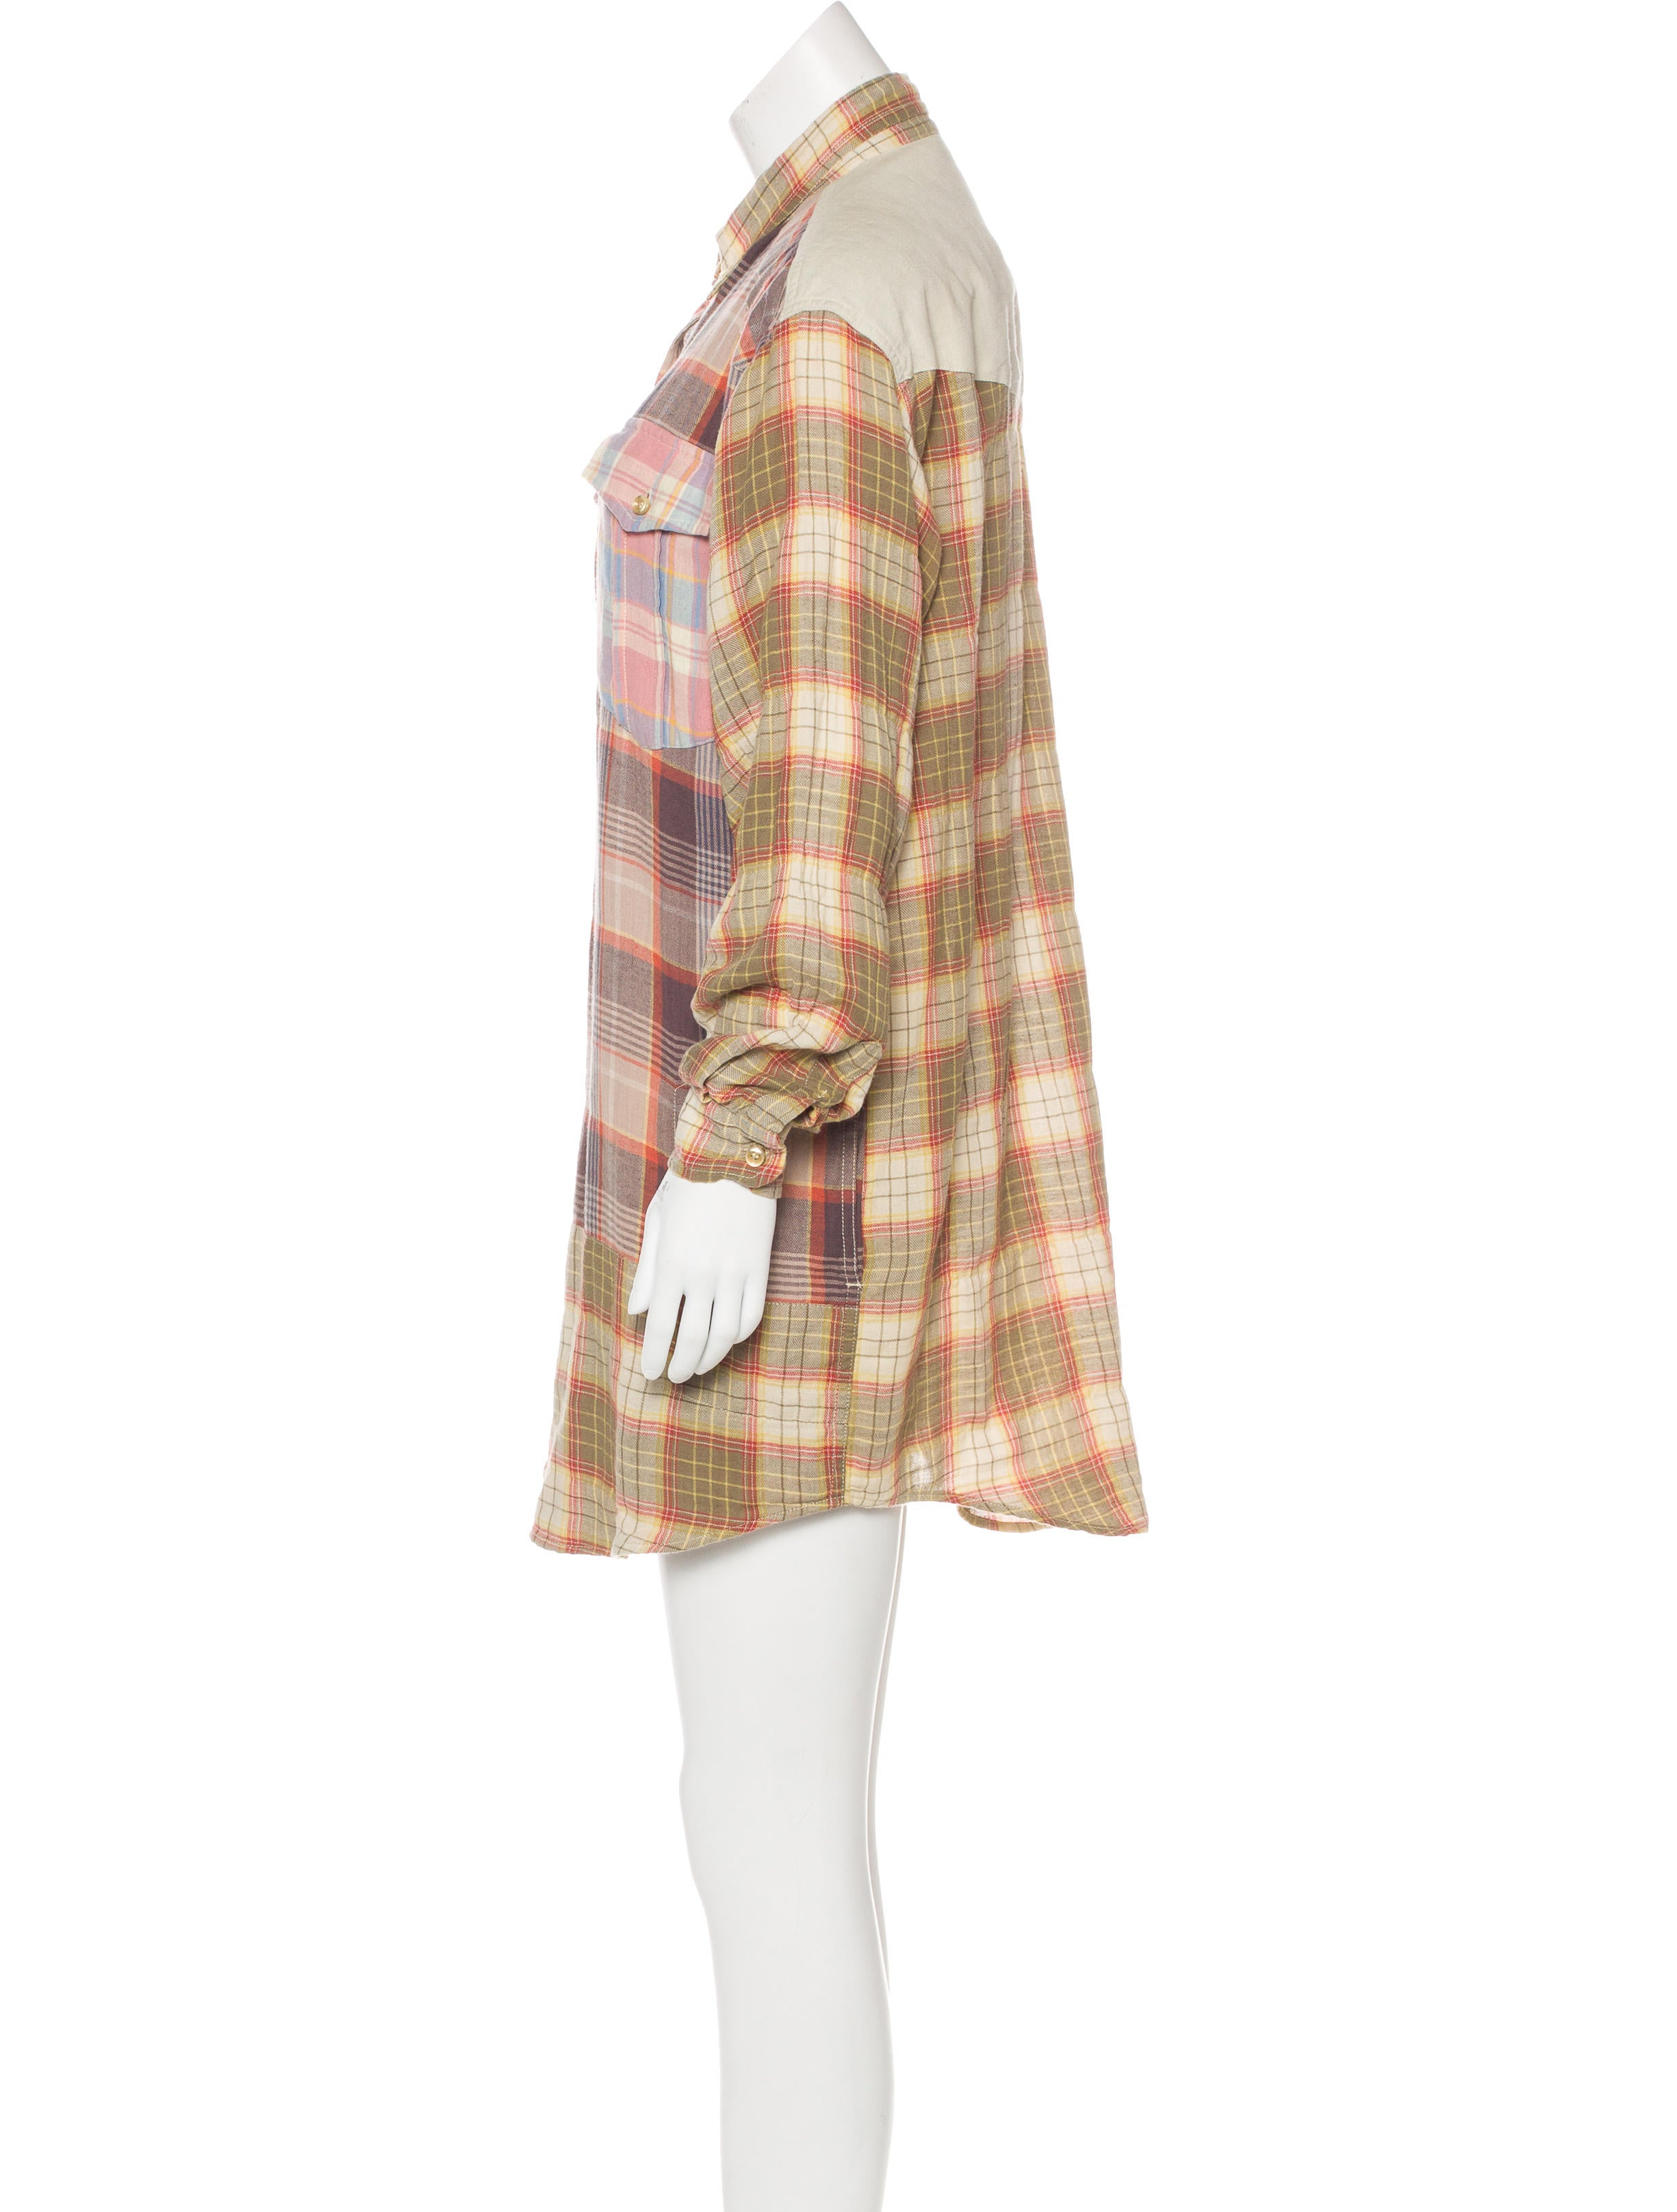 Toile Isabel Marant Plaid Shirt Dress Clothing